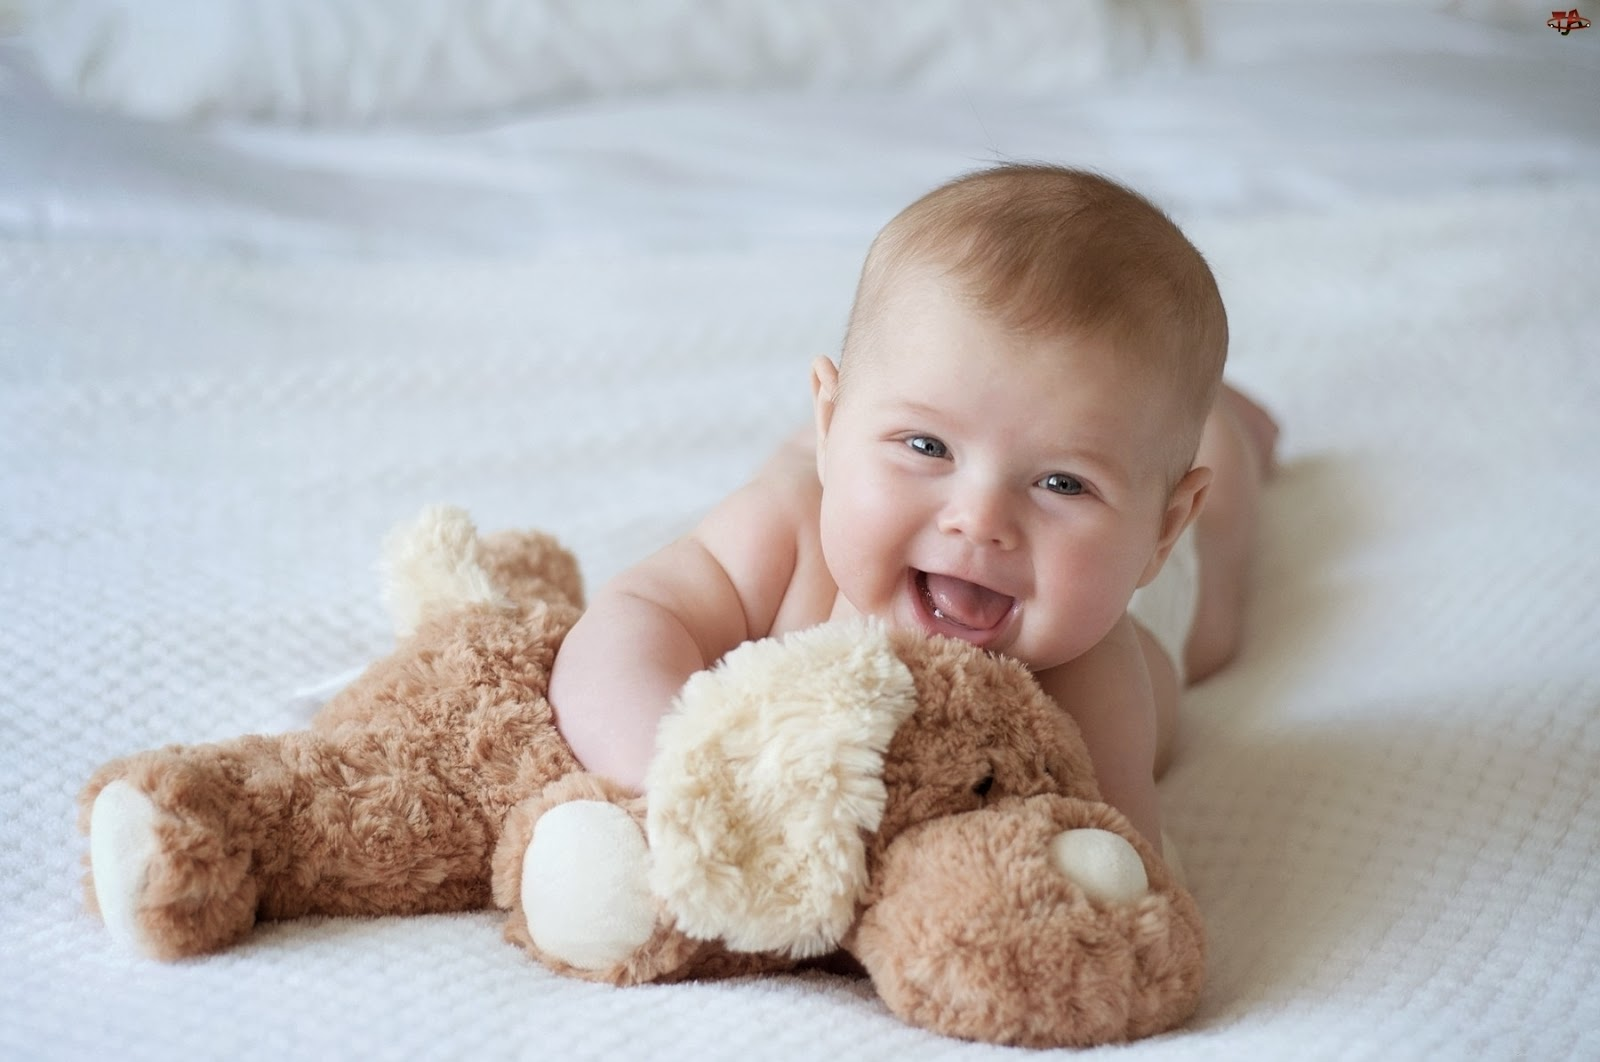 Cute Little Baby Boy Playing With Toy Hd Wallpaper Cute